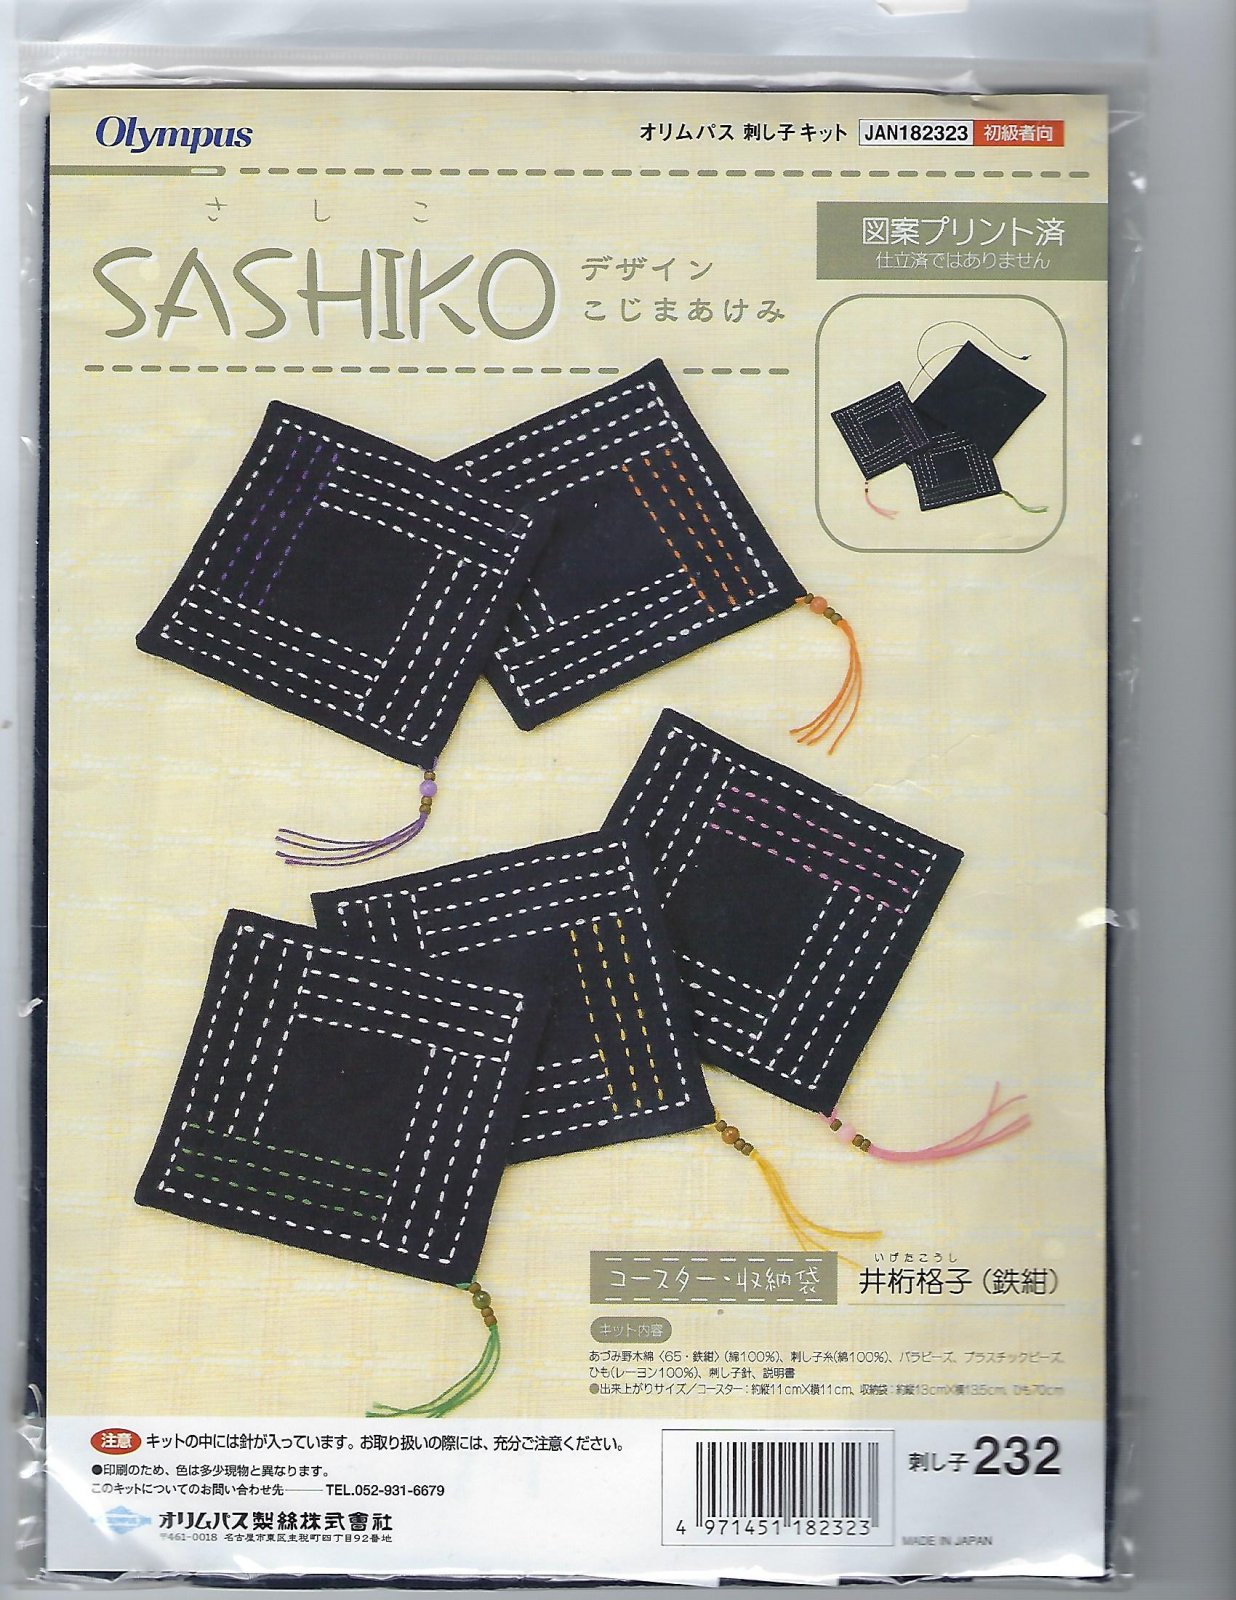 Coaster Set wcase Sashiko